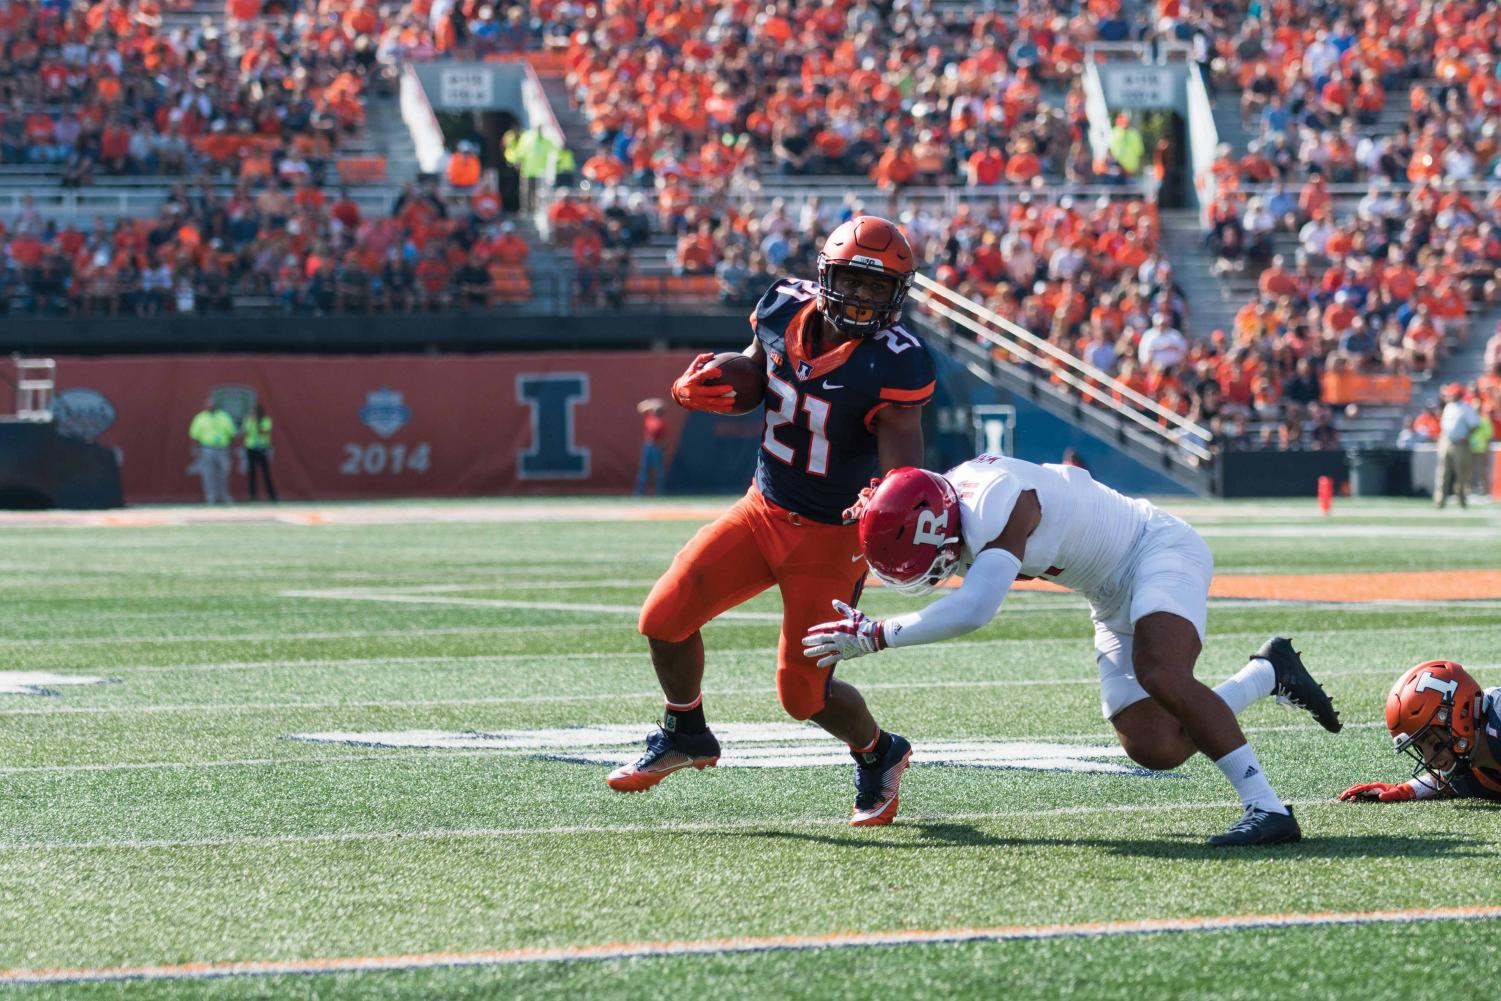 Illinois running back Ra'Von Bonner sweeps past defenders during the game against Rutgers on Saturday, Oct. 24.  The Illini lost 35-24